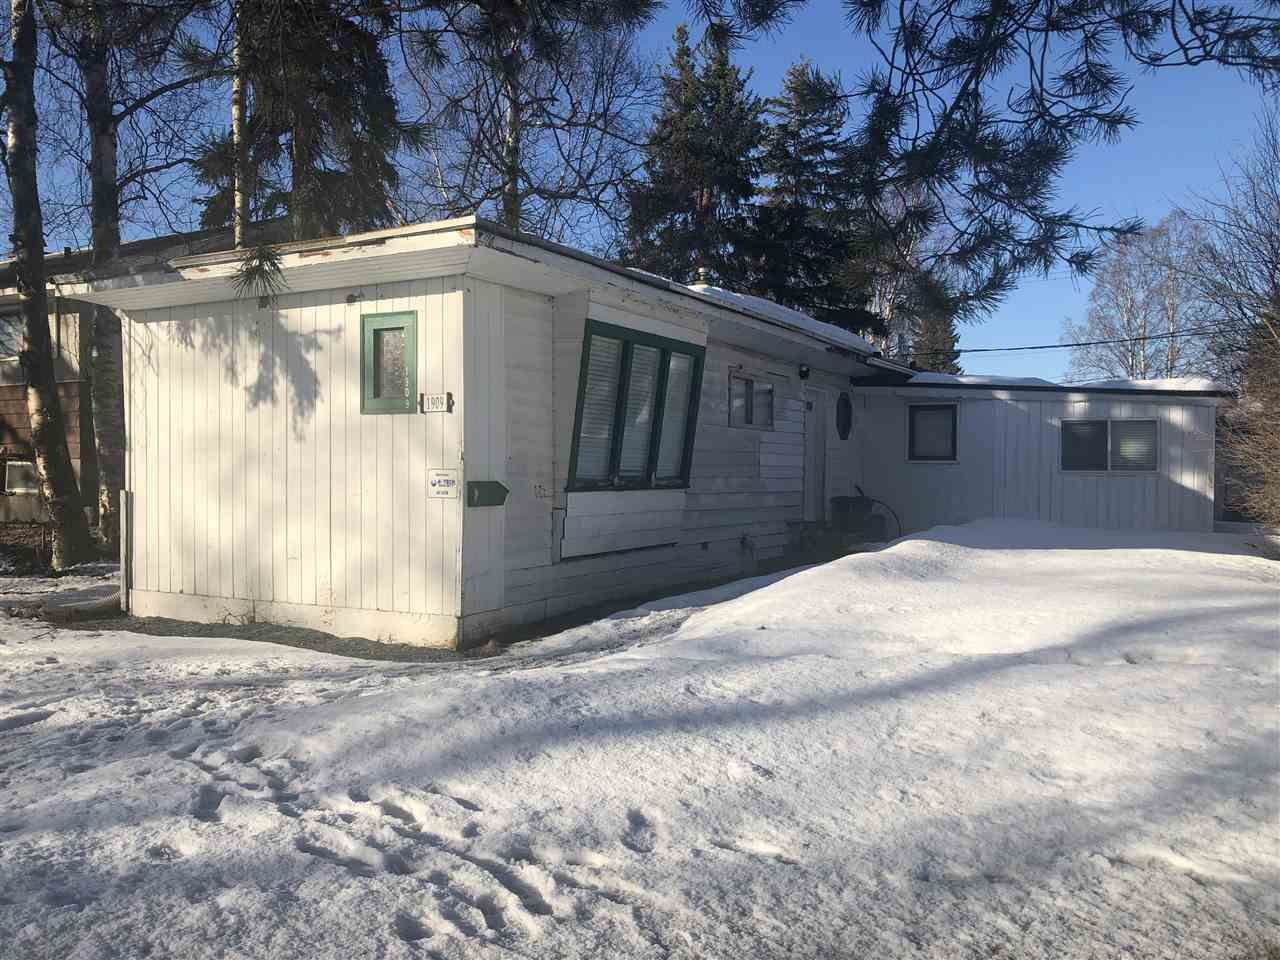 """Main Photo: 1909 MAPLE Street in Prince George: Connaught House for sale in """"Connaught"""" (PG City Central (Zone 72))  : MLS®# R2441576"""